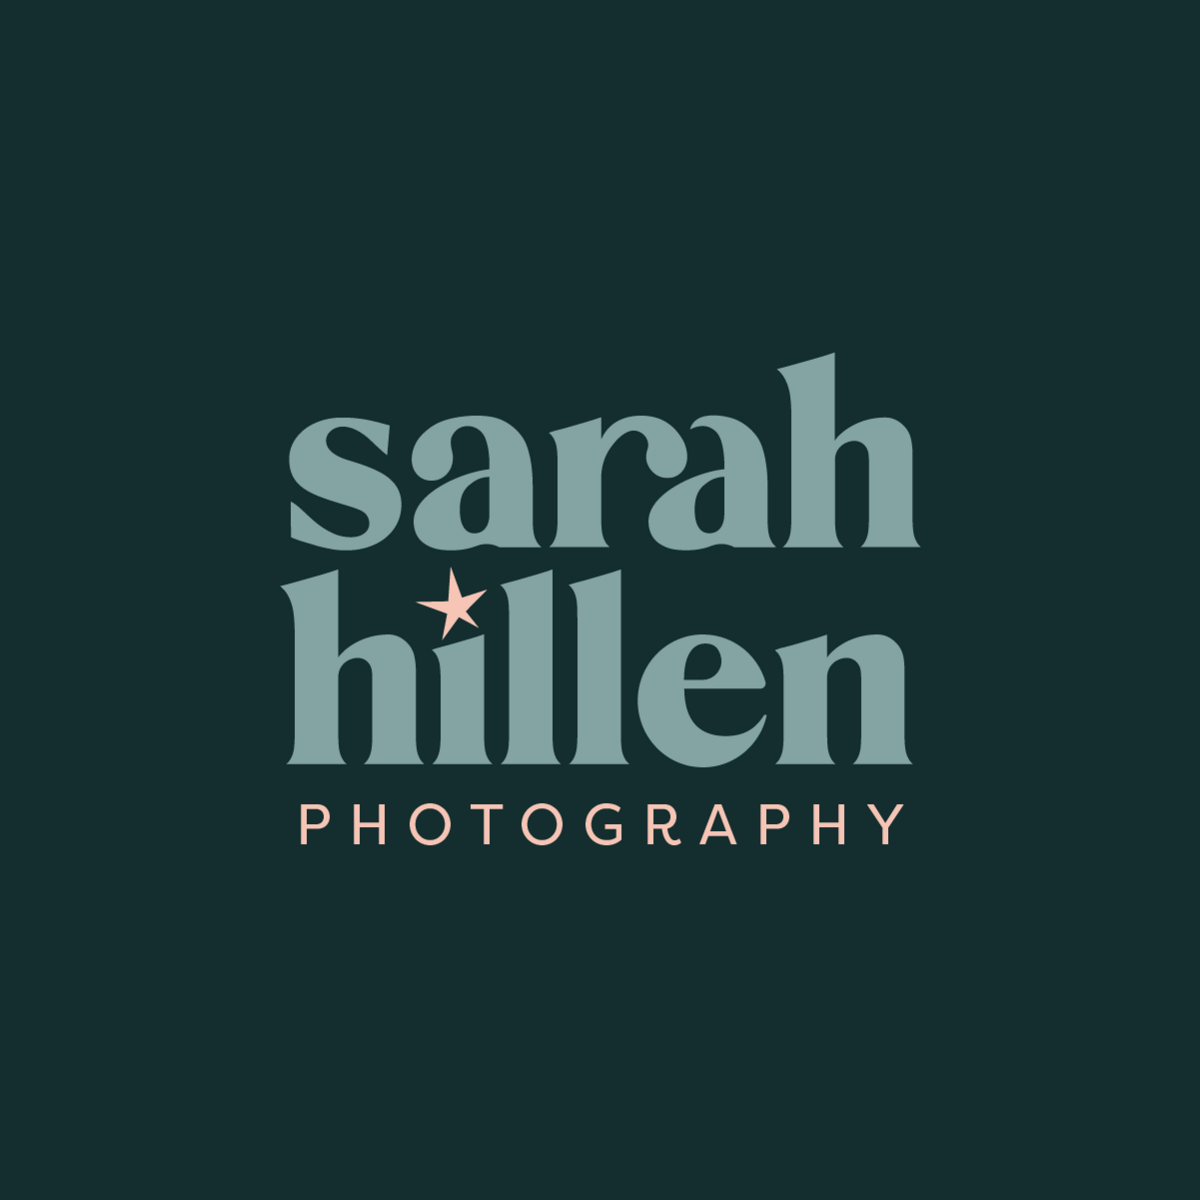 Sarah Hillen Photo Logos for Web-12